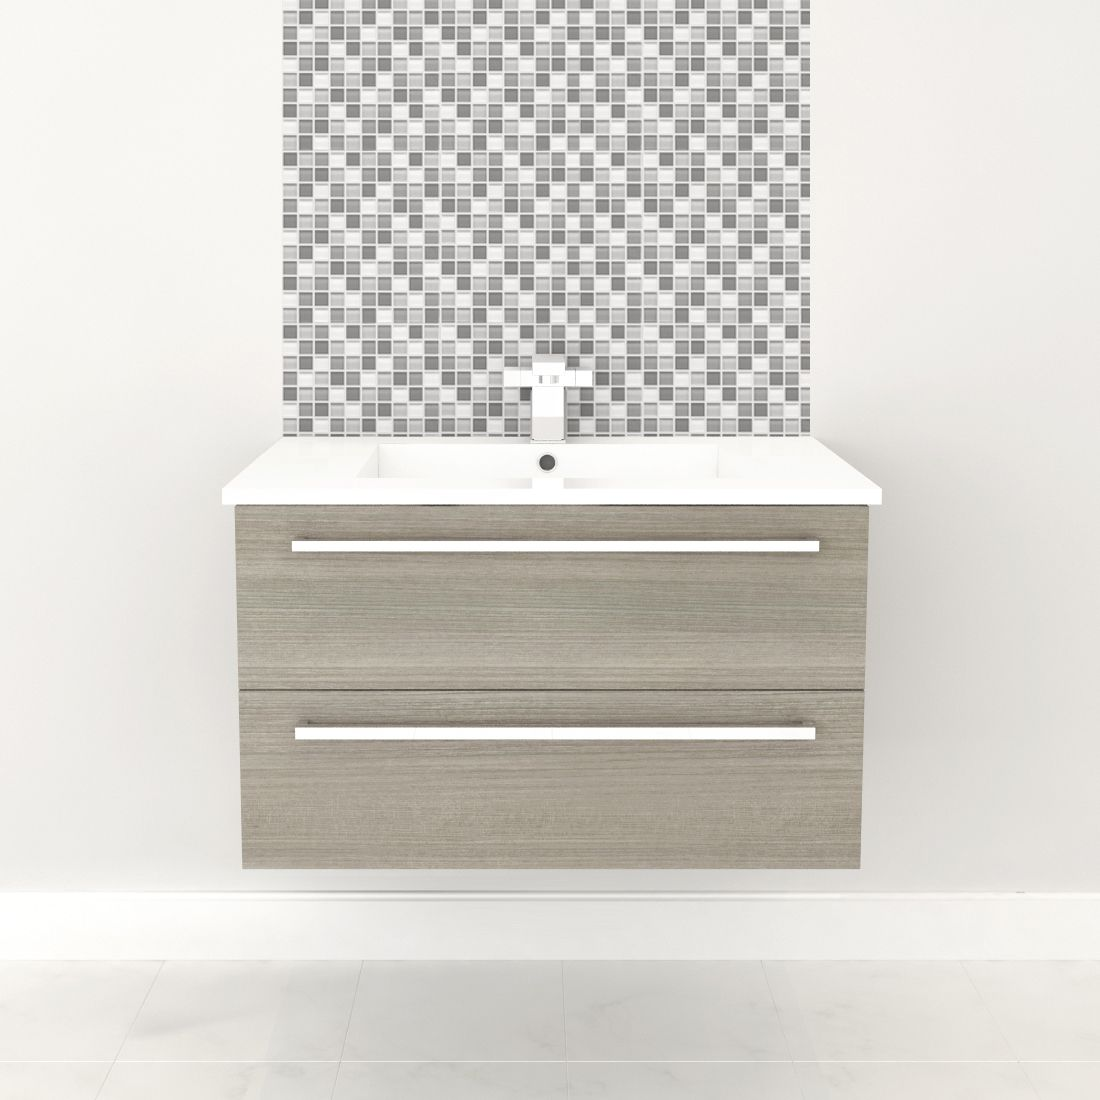 30 Bathroom Vanity With Top Canada cutler kitchen & bath silhouette collection 30-in wall hung vanity